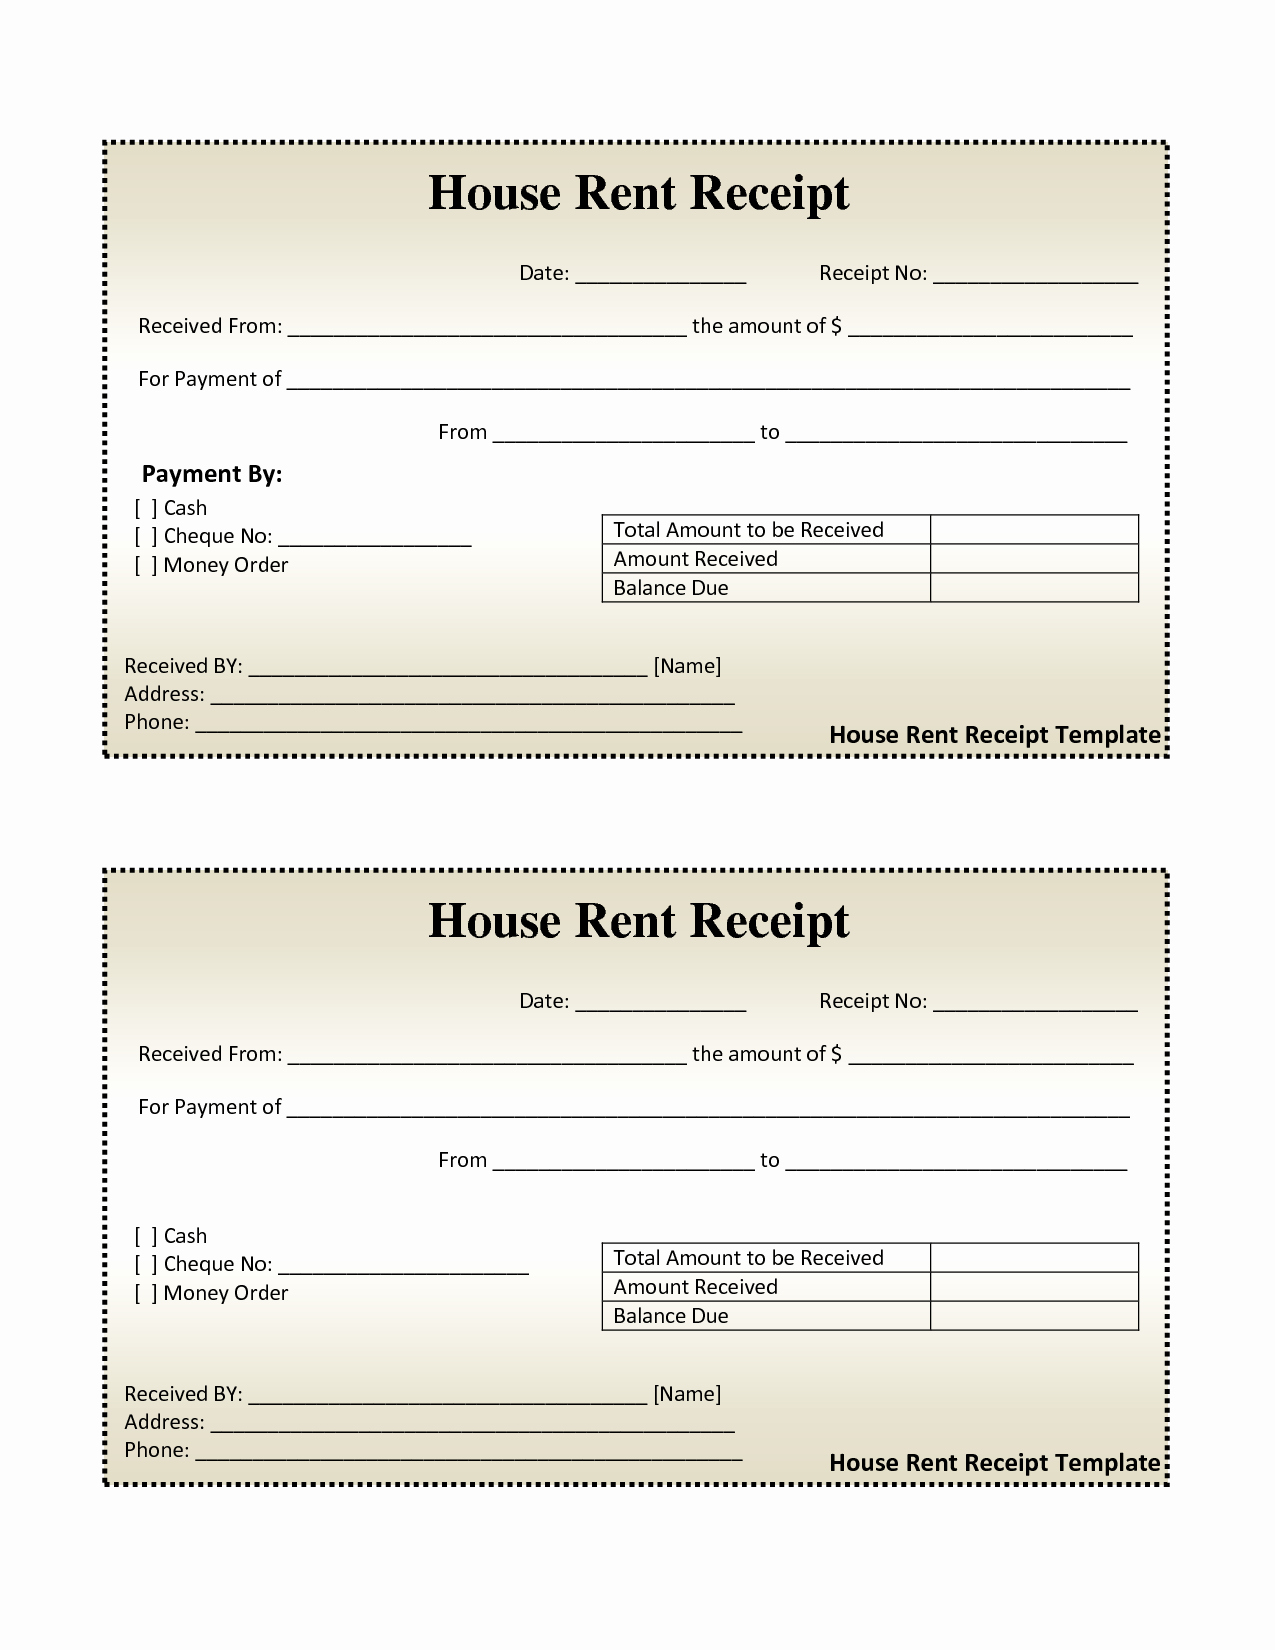 Free Rent Receipt Template New Free House Rental Invoice